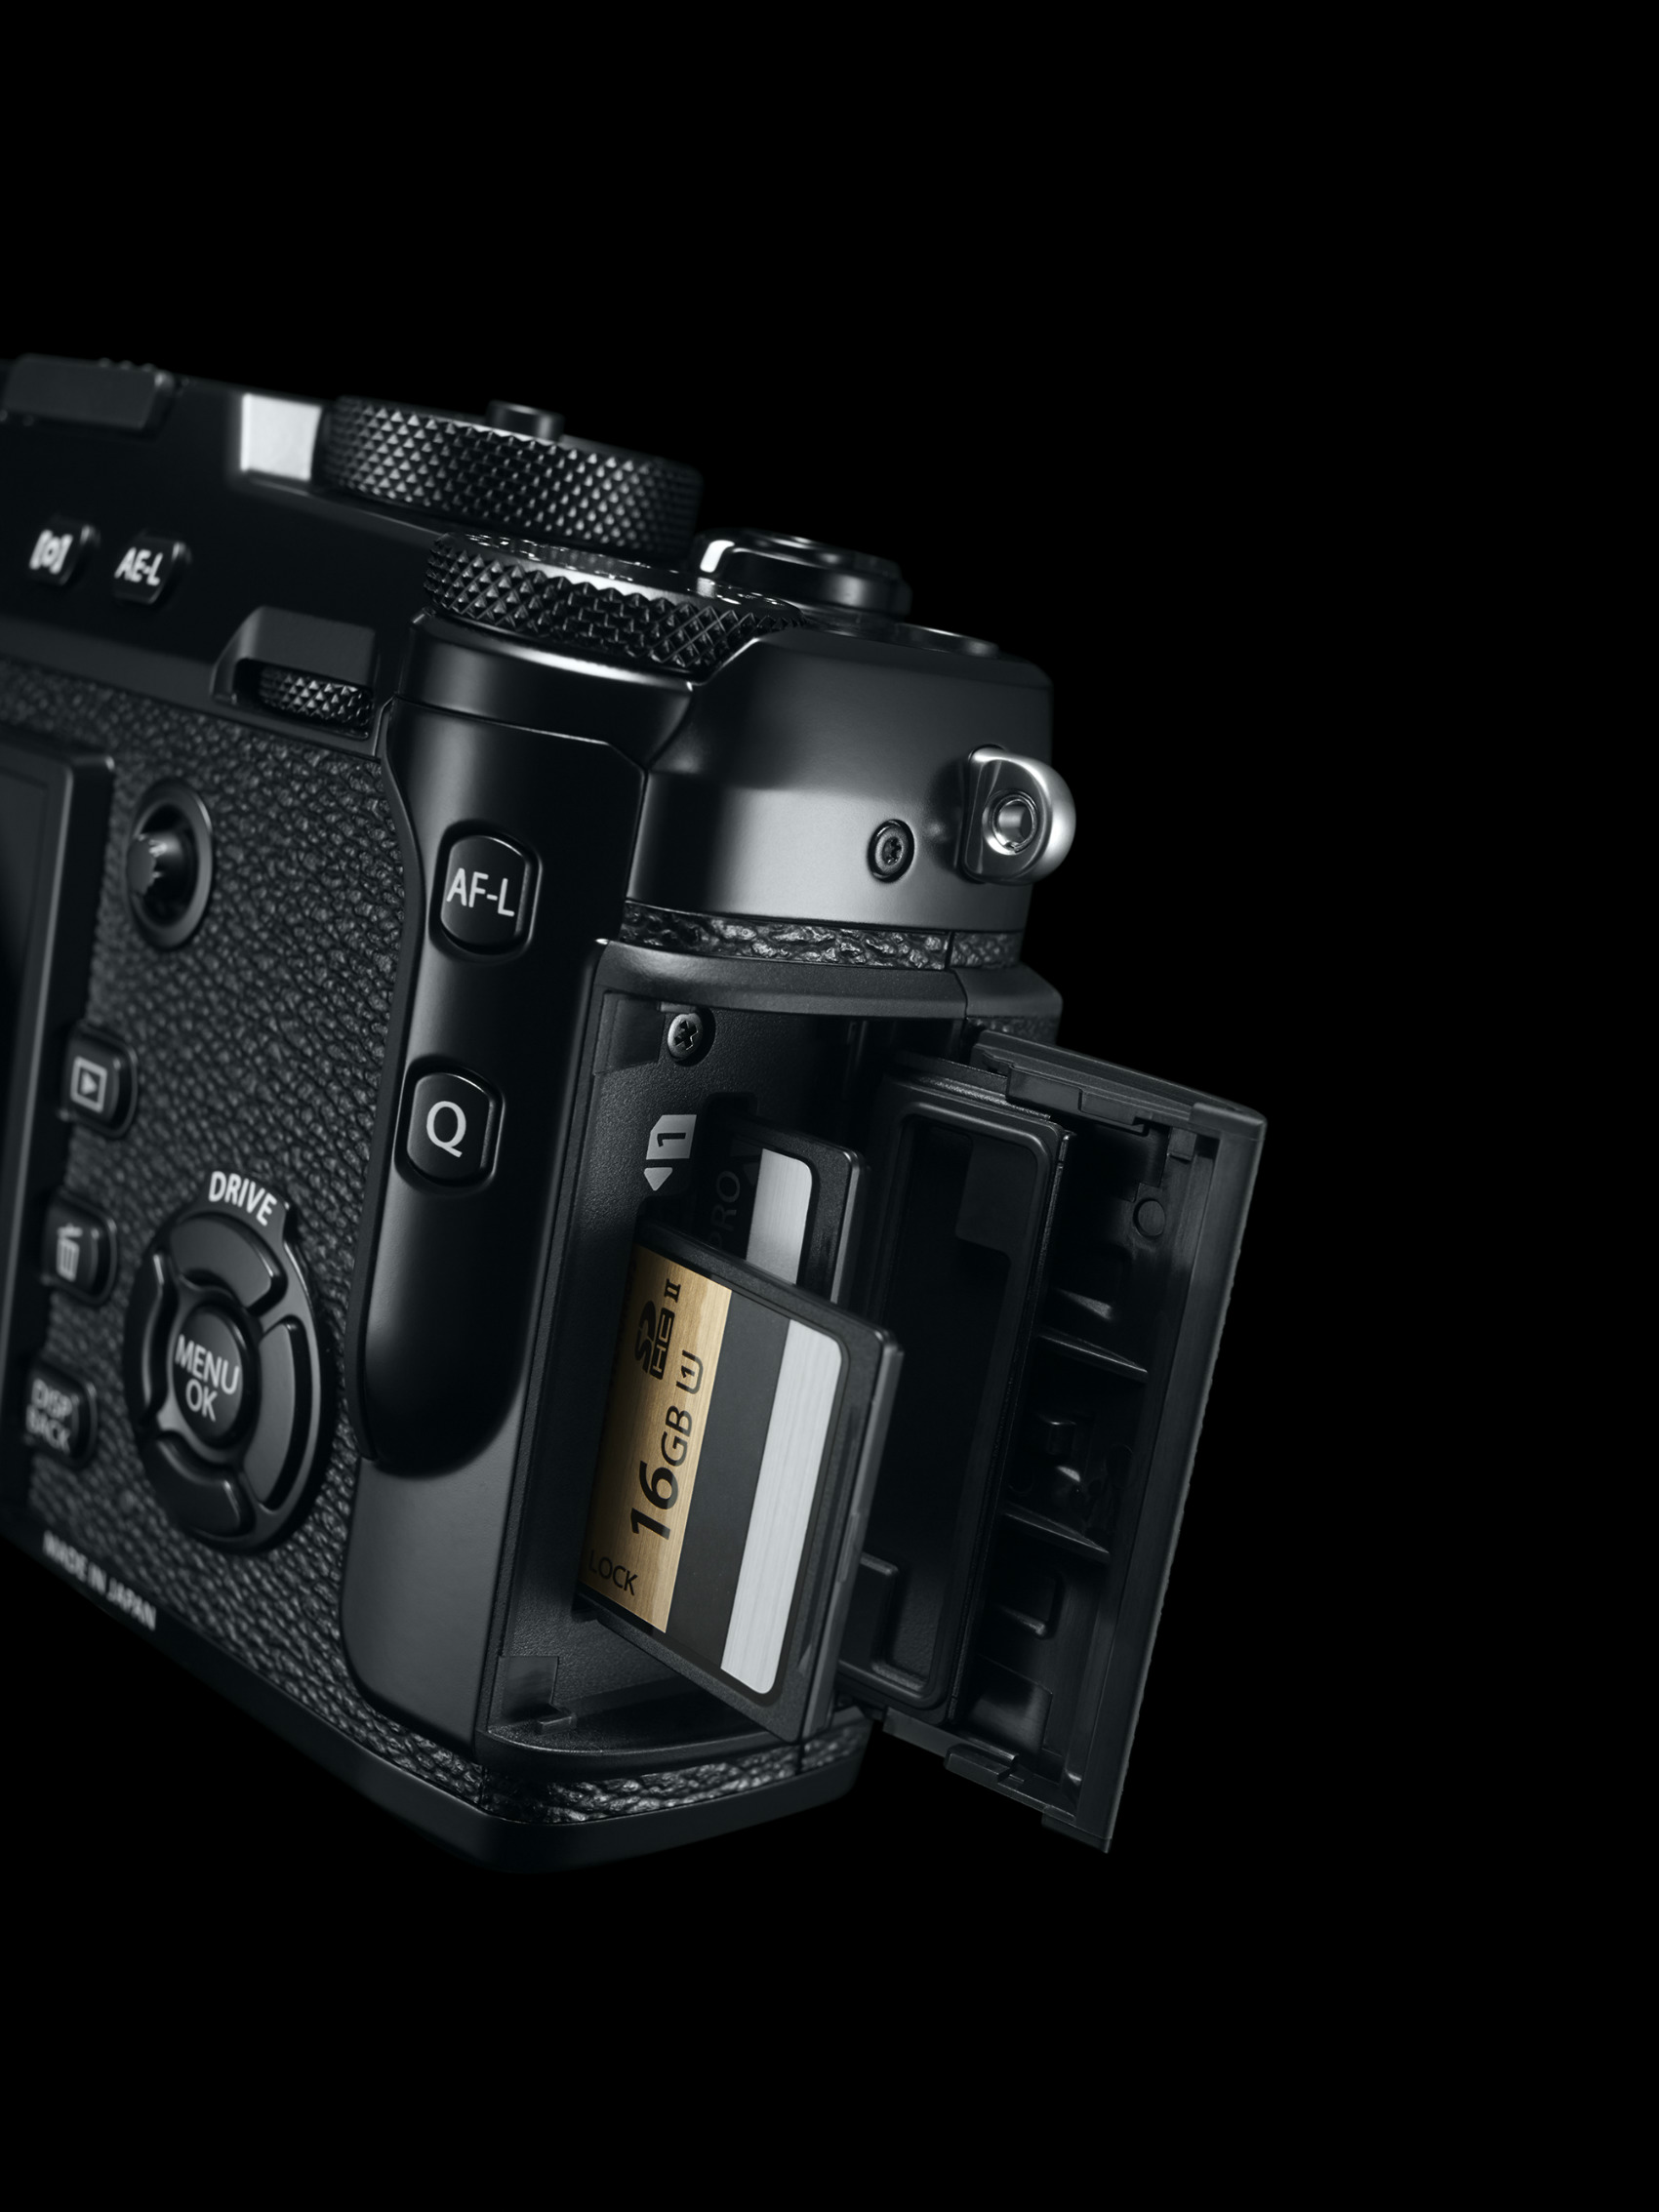 41_X Pro2_BK_SD_card_Slot_inside r85